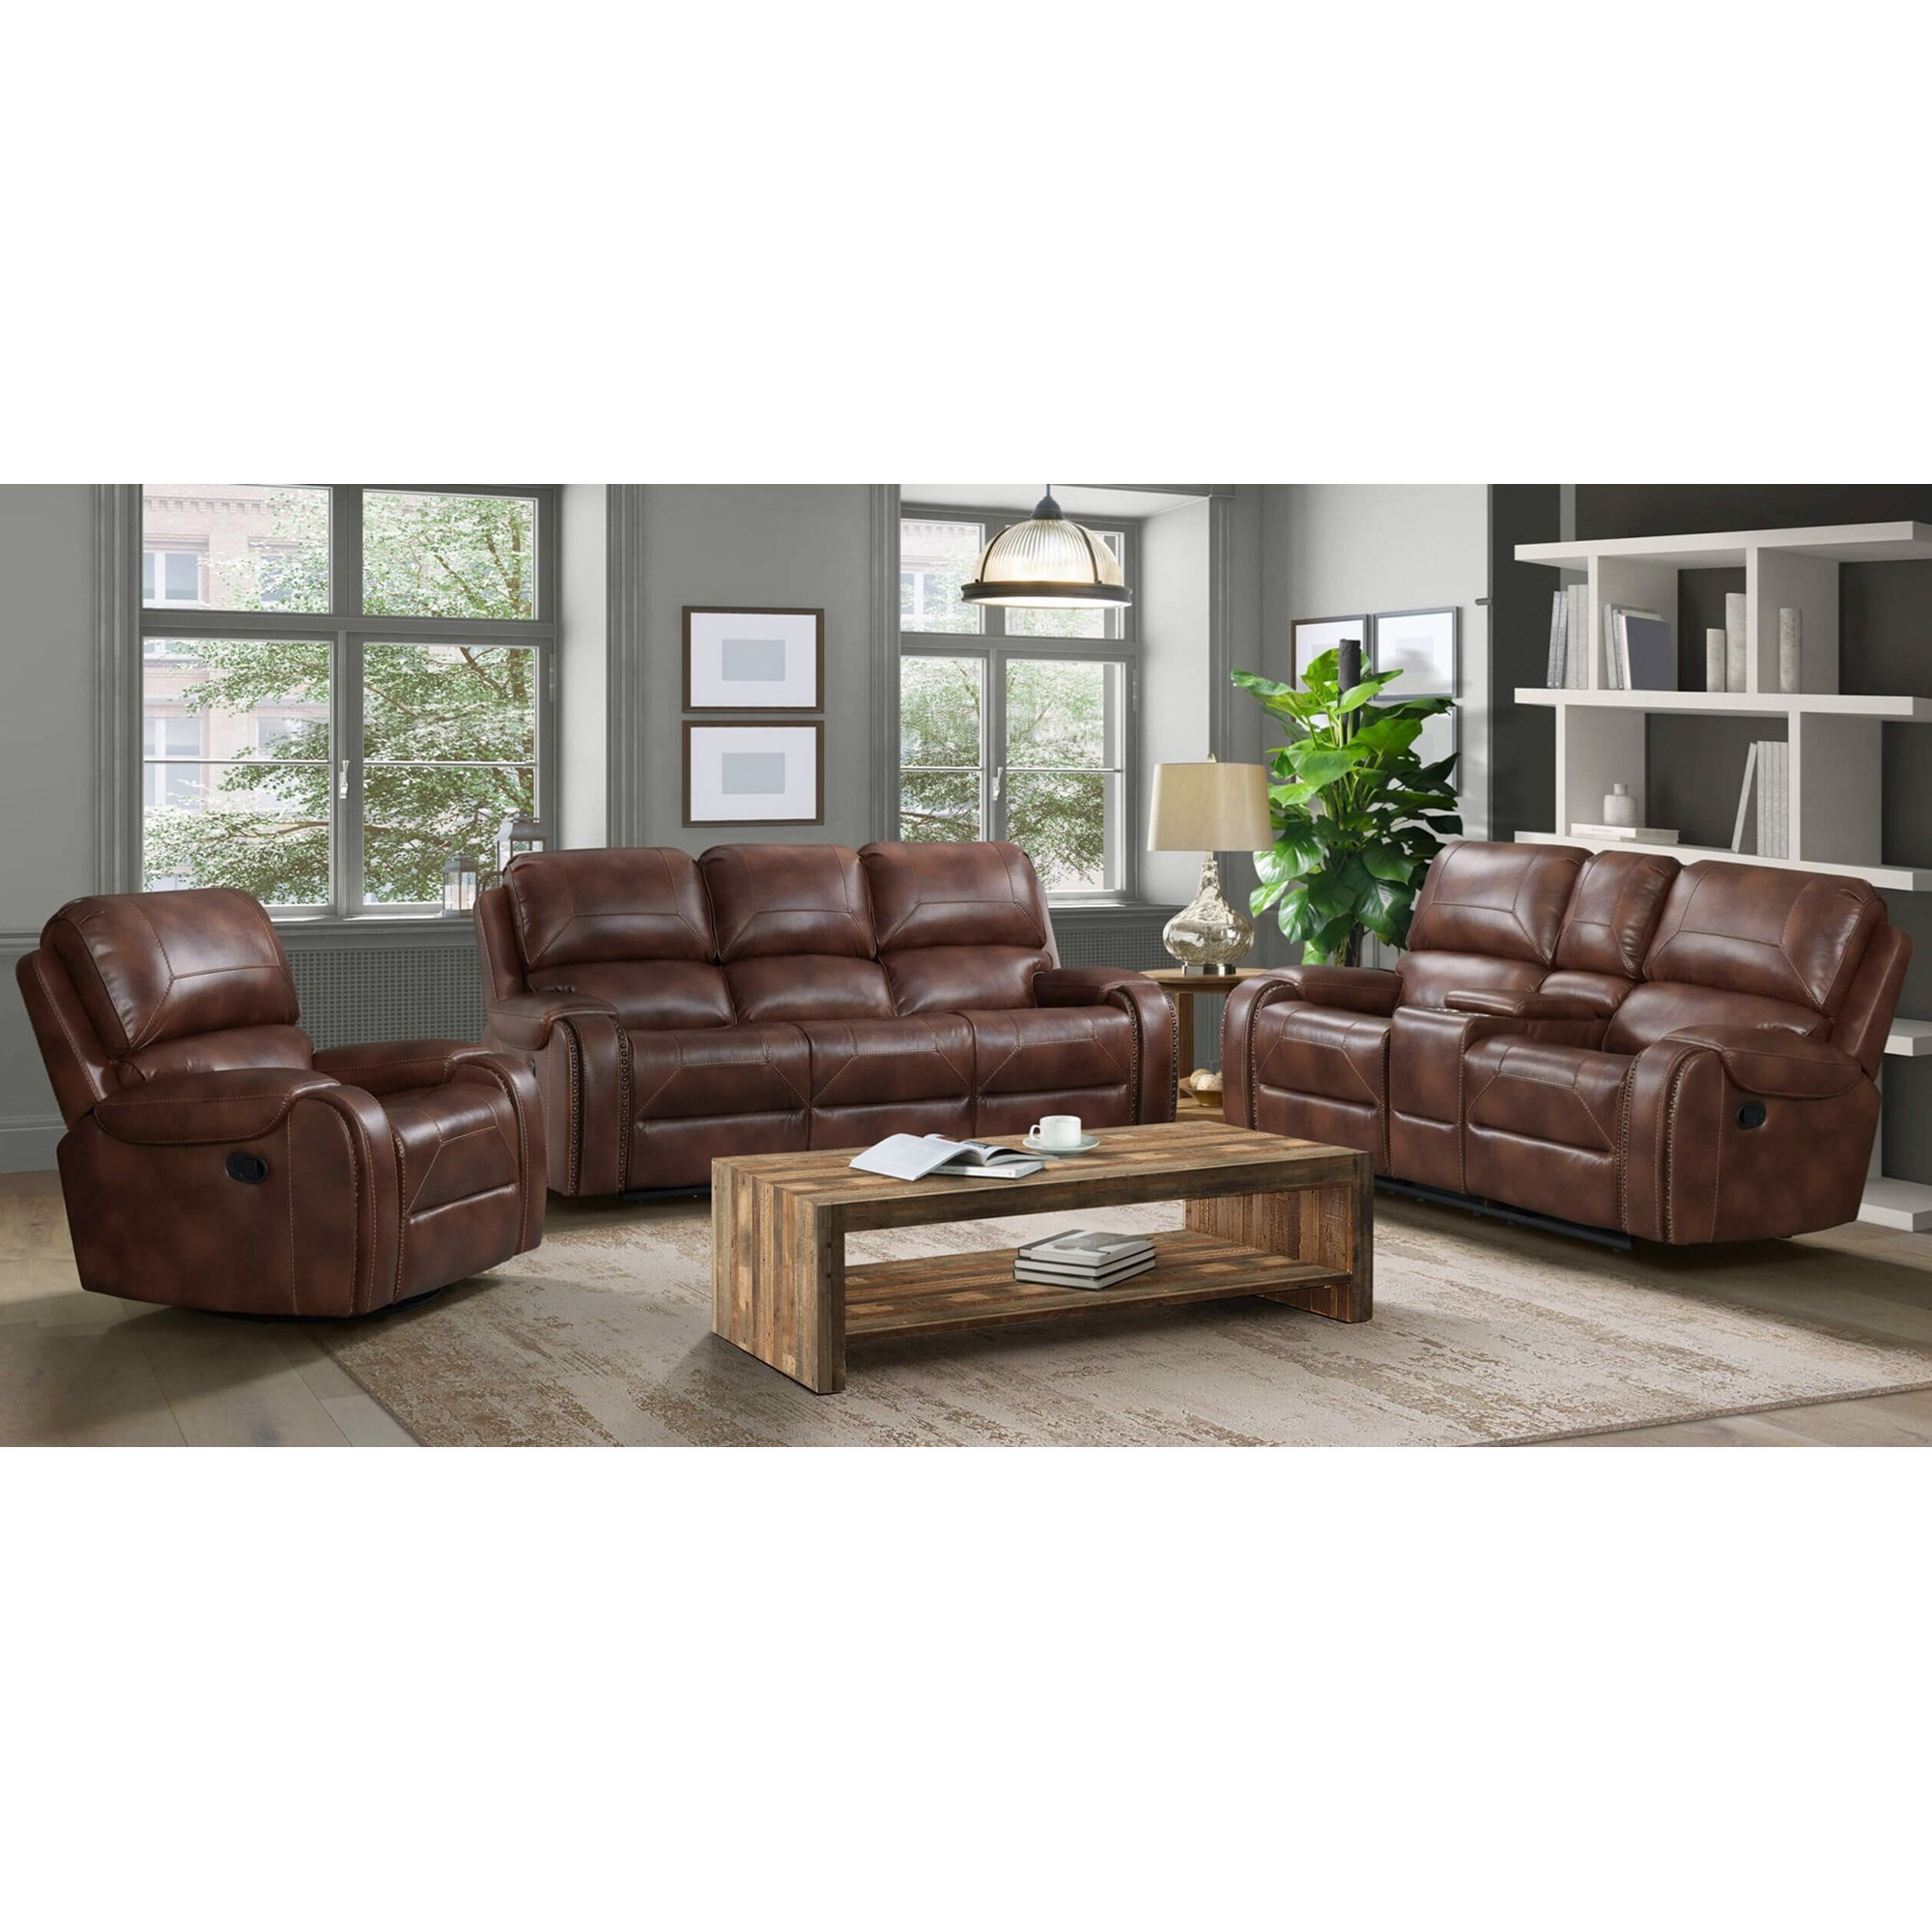 59931 Reclining Living Room Group by Lane at Powell's Furniture and Mattress